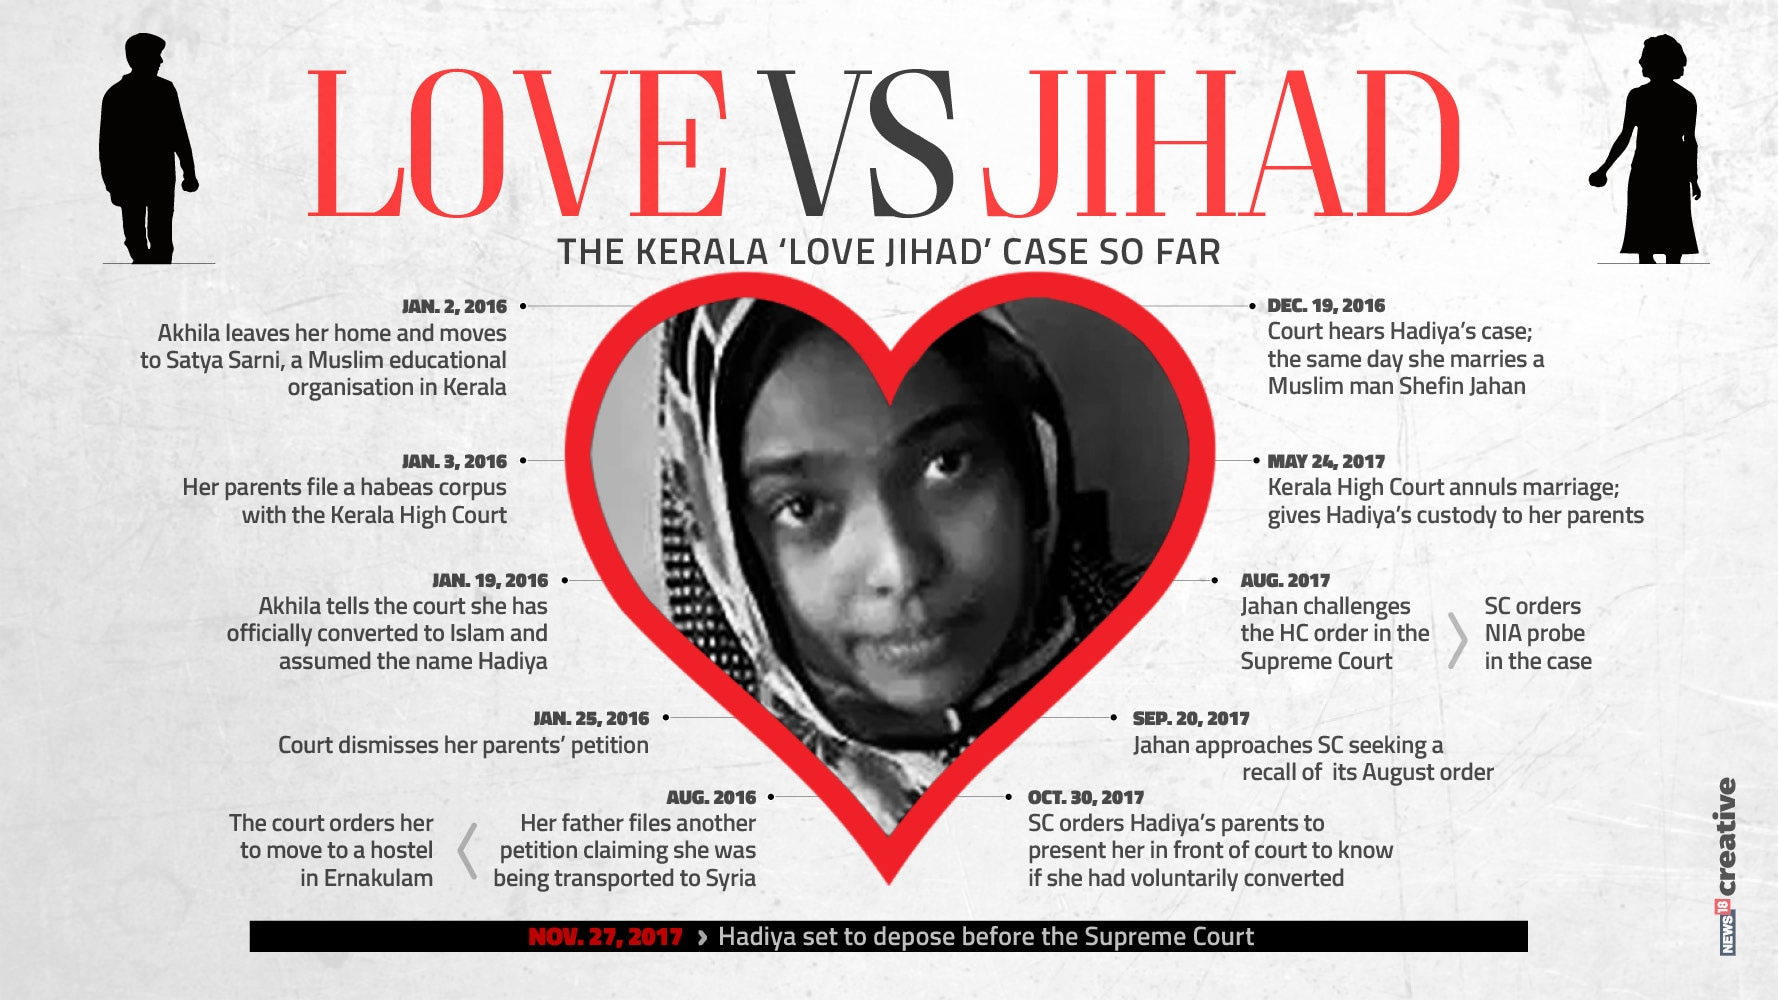 Supreme Court to hear Kerala Love-Jihad case today